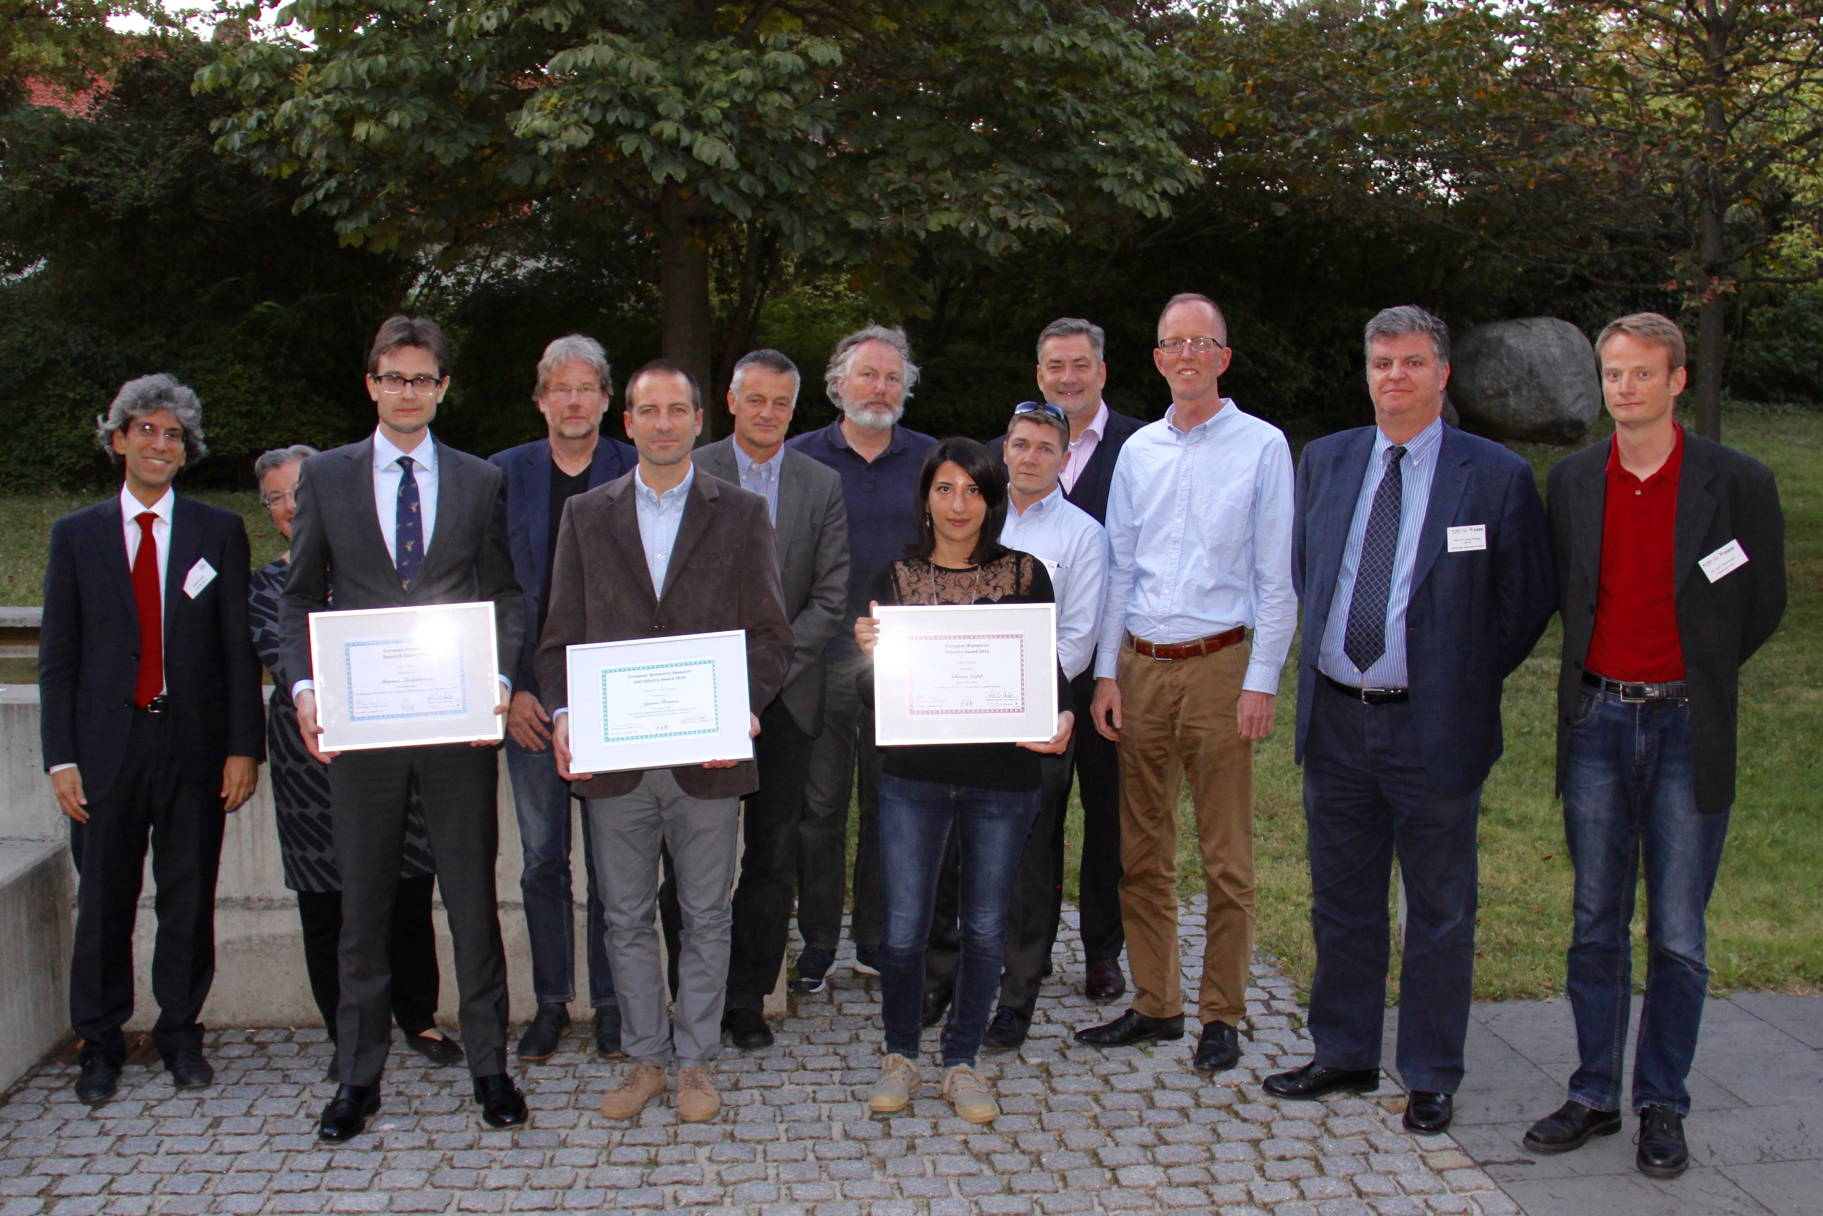 [Photo] Winners of the Awards 2015 together with the jury: (left to right): Patrizio Campisi, Dijana Petrovska Delacretaz, Mateusz Trokielewicz, Raymond Veldhuis, Javier Franco-Pedroso, Christoph Busch, Günther Schumacher, Chiara Galdi, Jean-Christophe Fondeur, Alexander Nouak, Tom Kevenaar, Javier Ortega Garcia and Lars Christensen